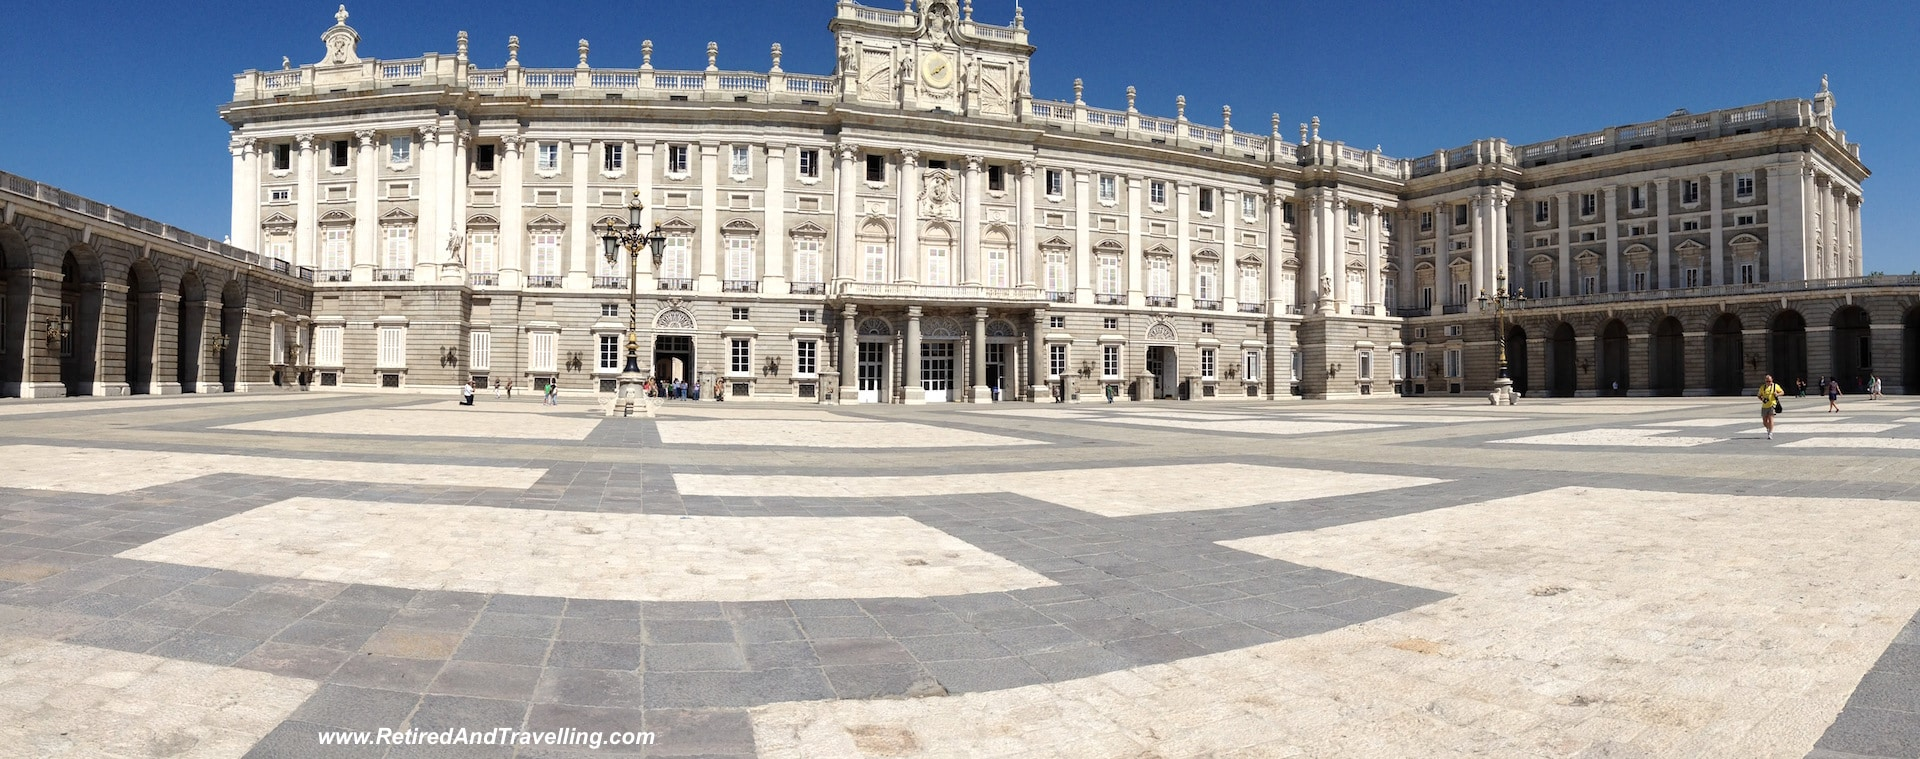 Madrid Palacio Real - Art and Architecture in Madrid.jpg